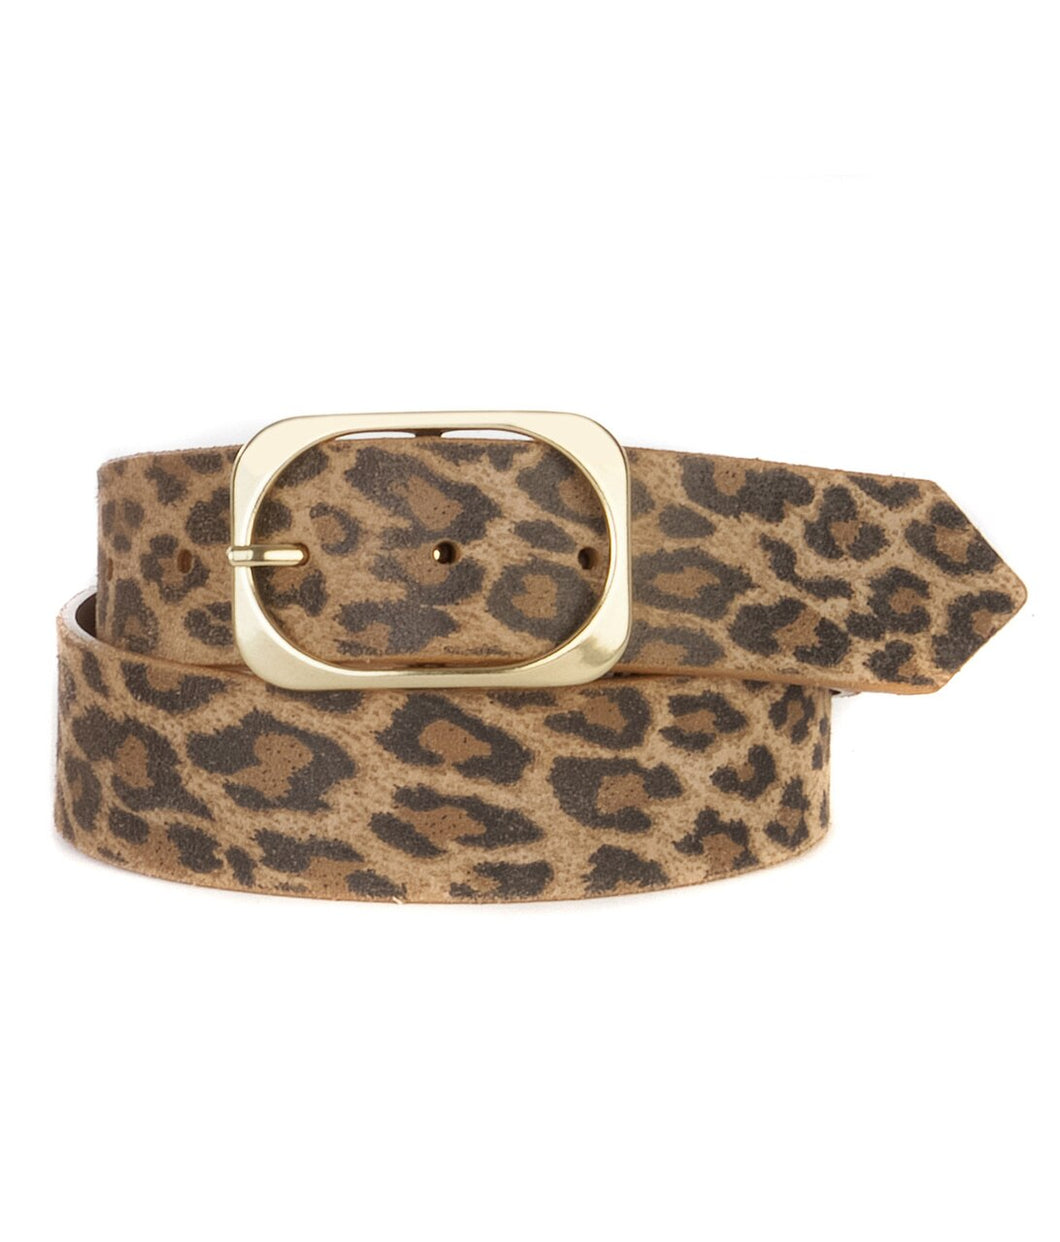 Oona Cheetah Brave Belt